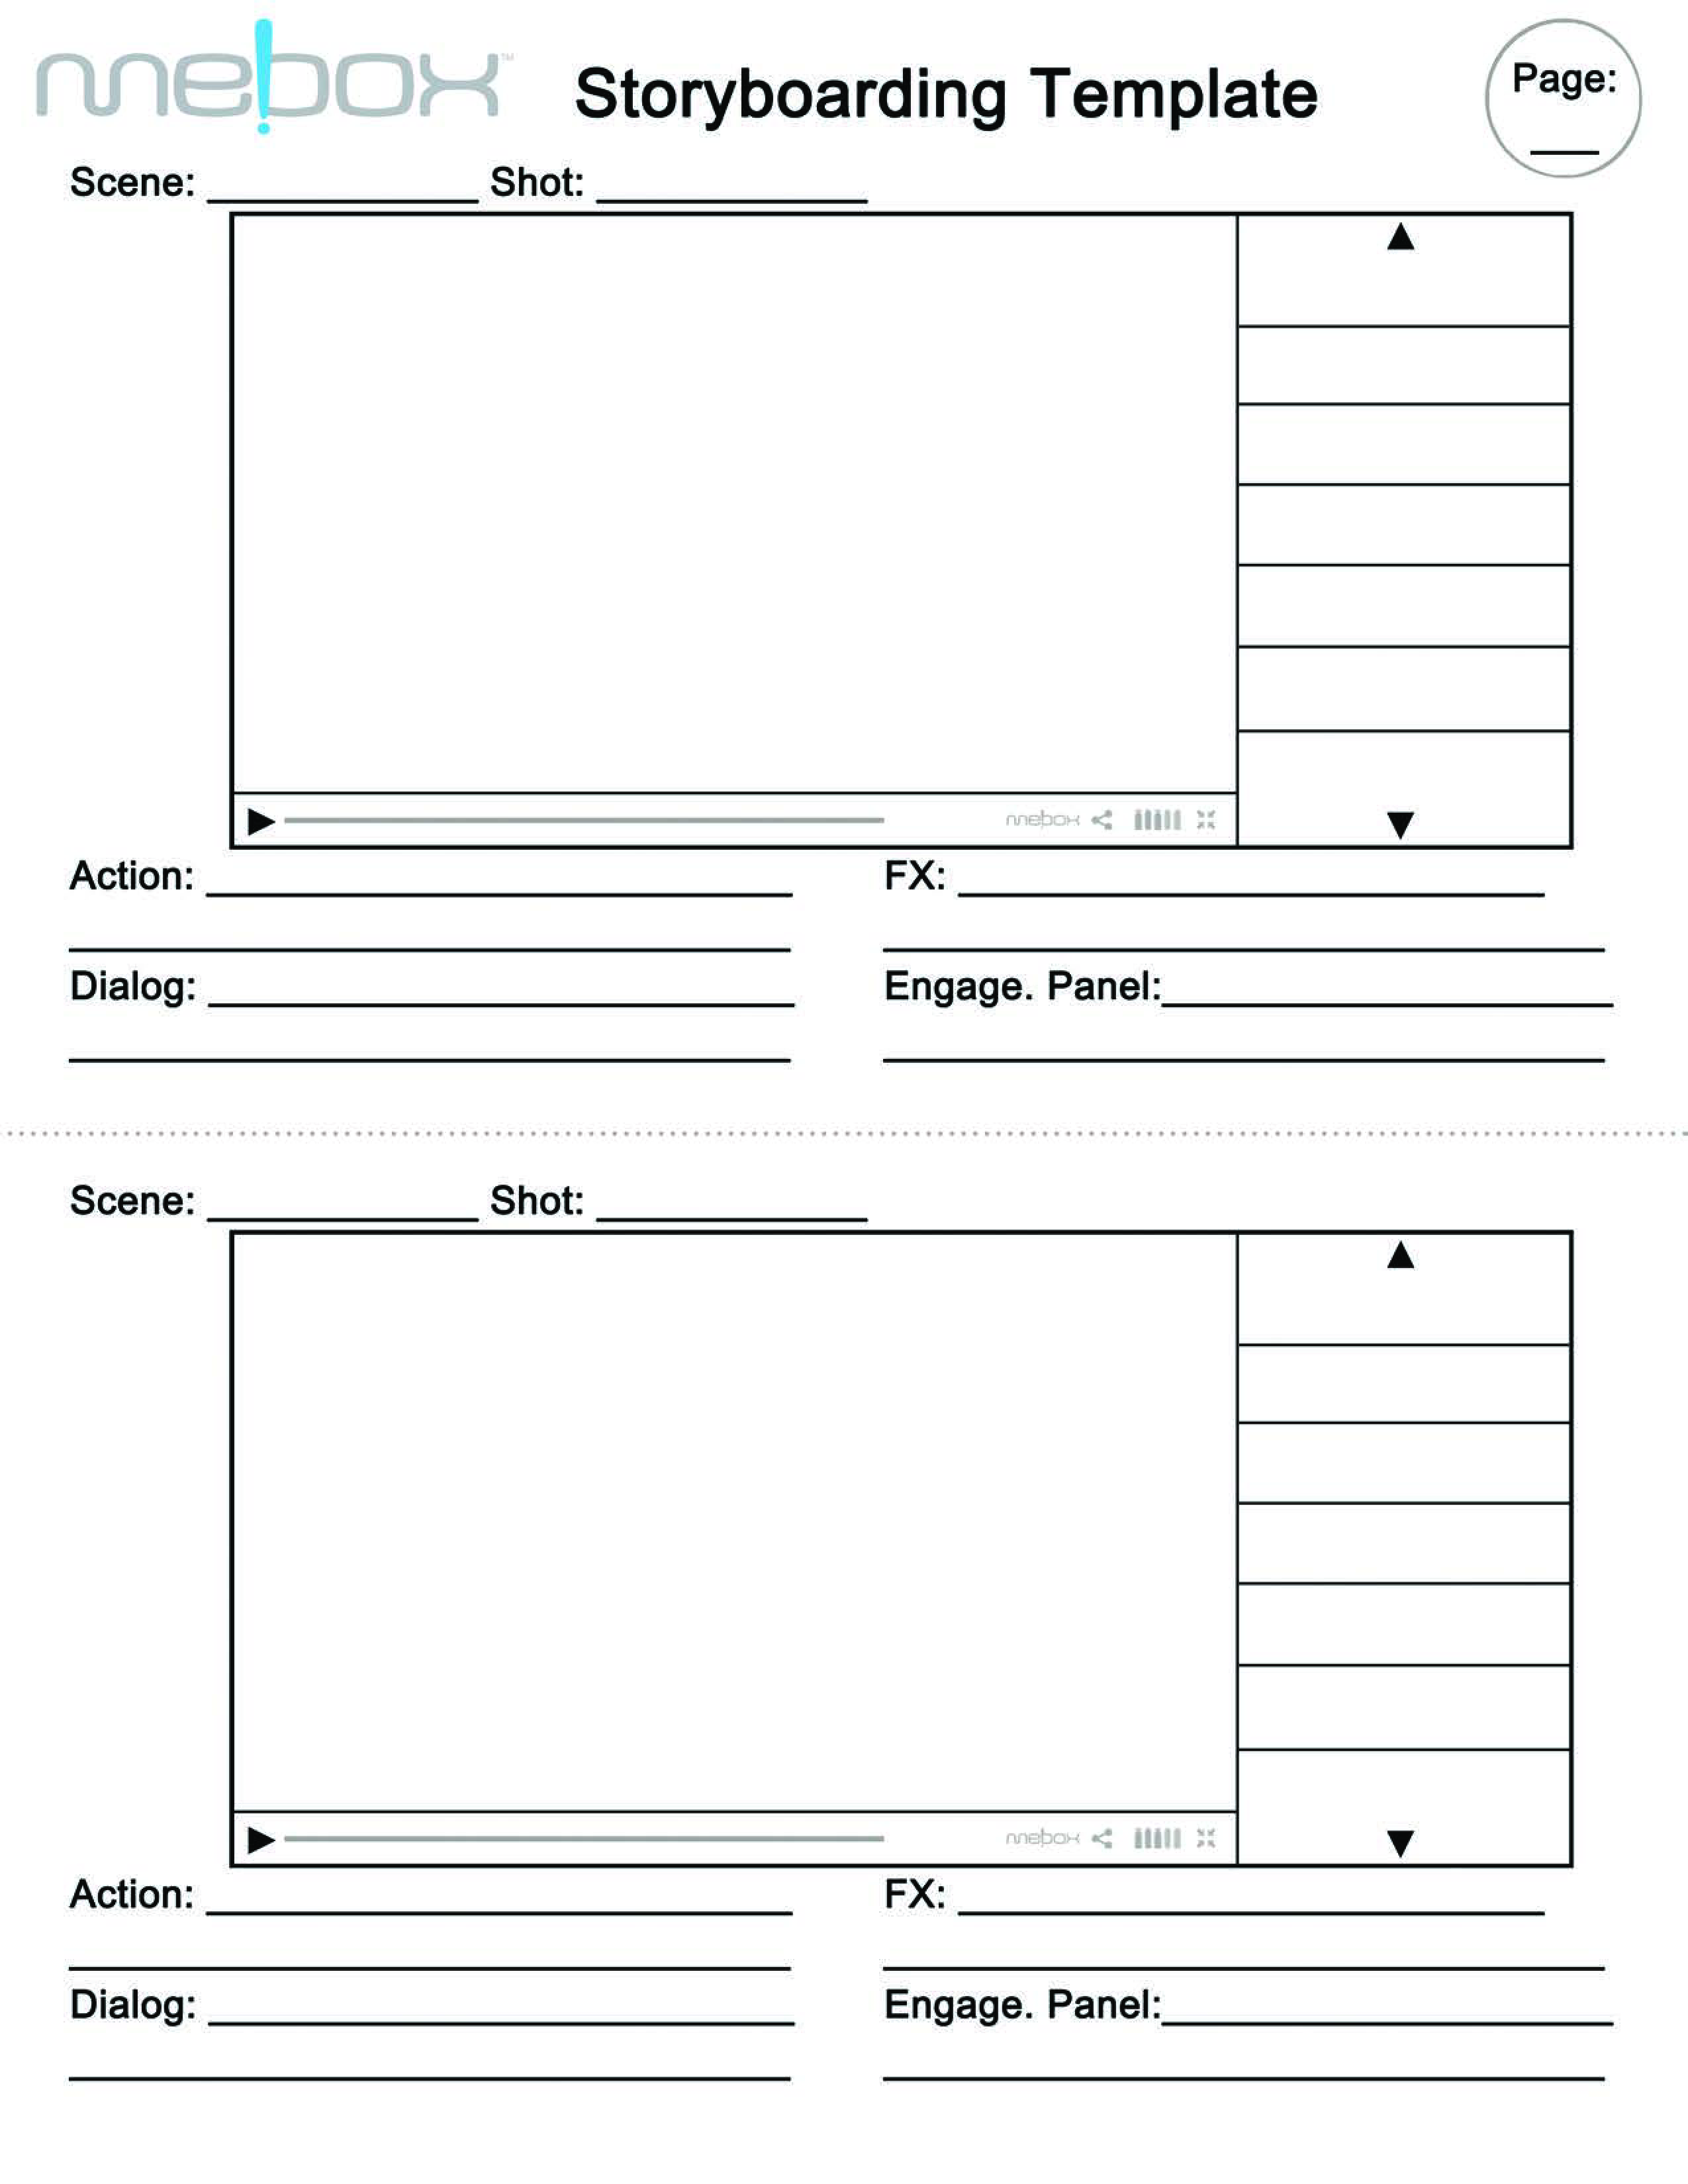 Free Storyboarding Template Templates At Allbusinesstemplates